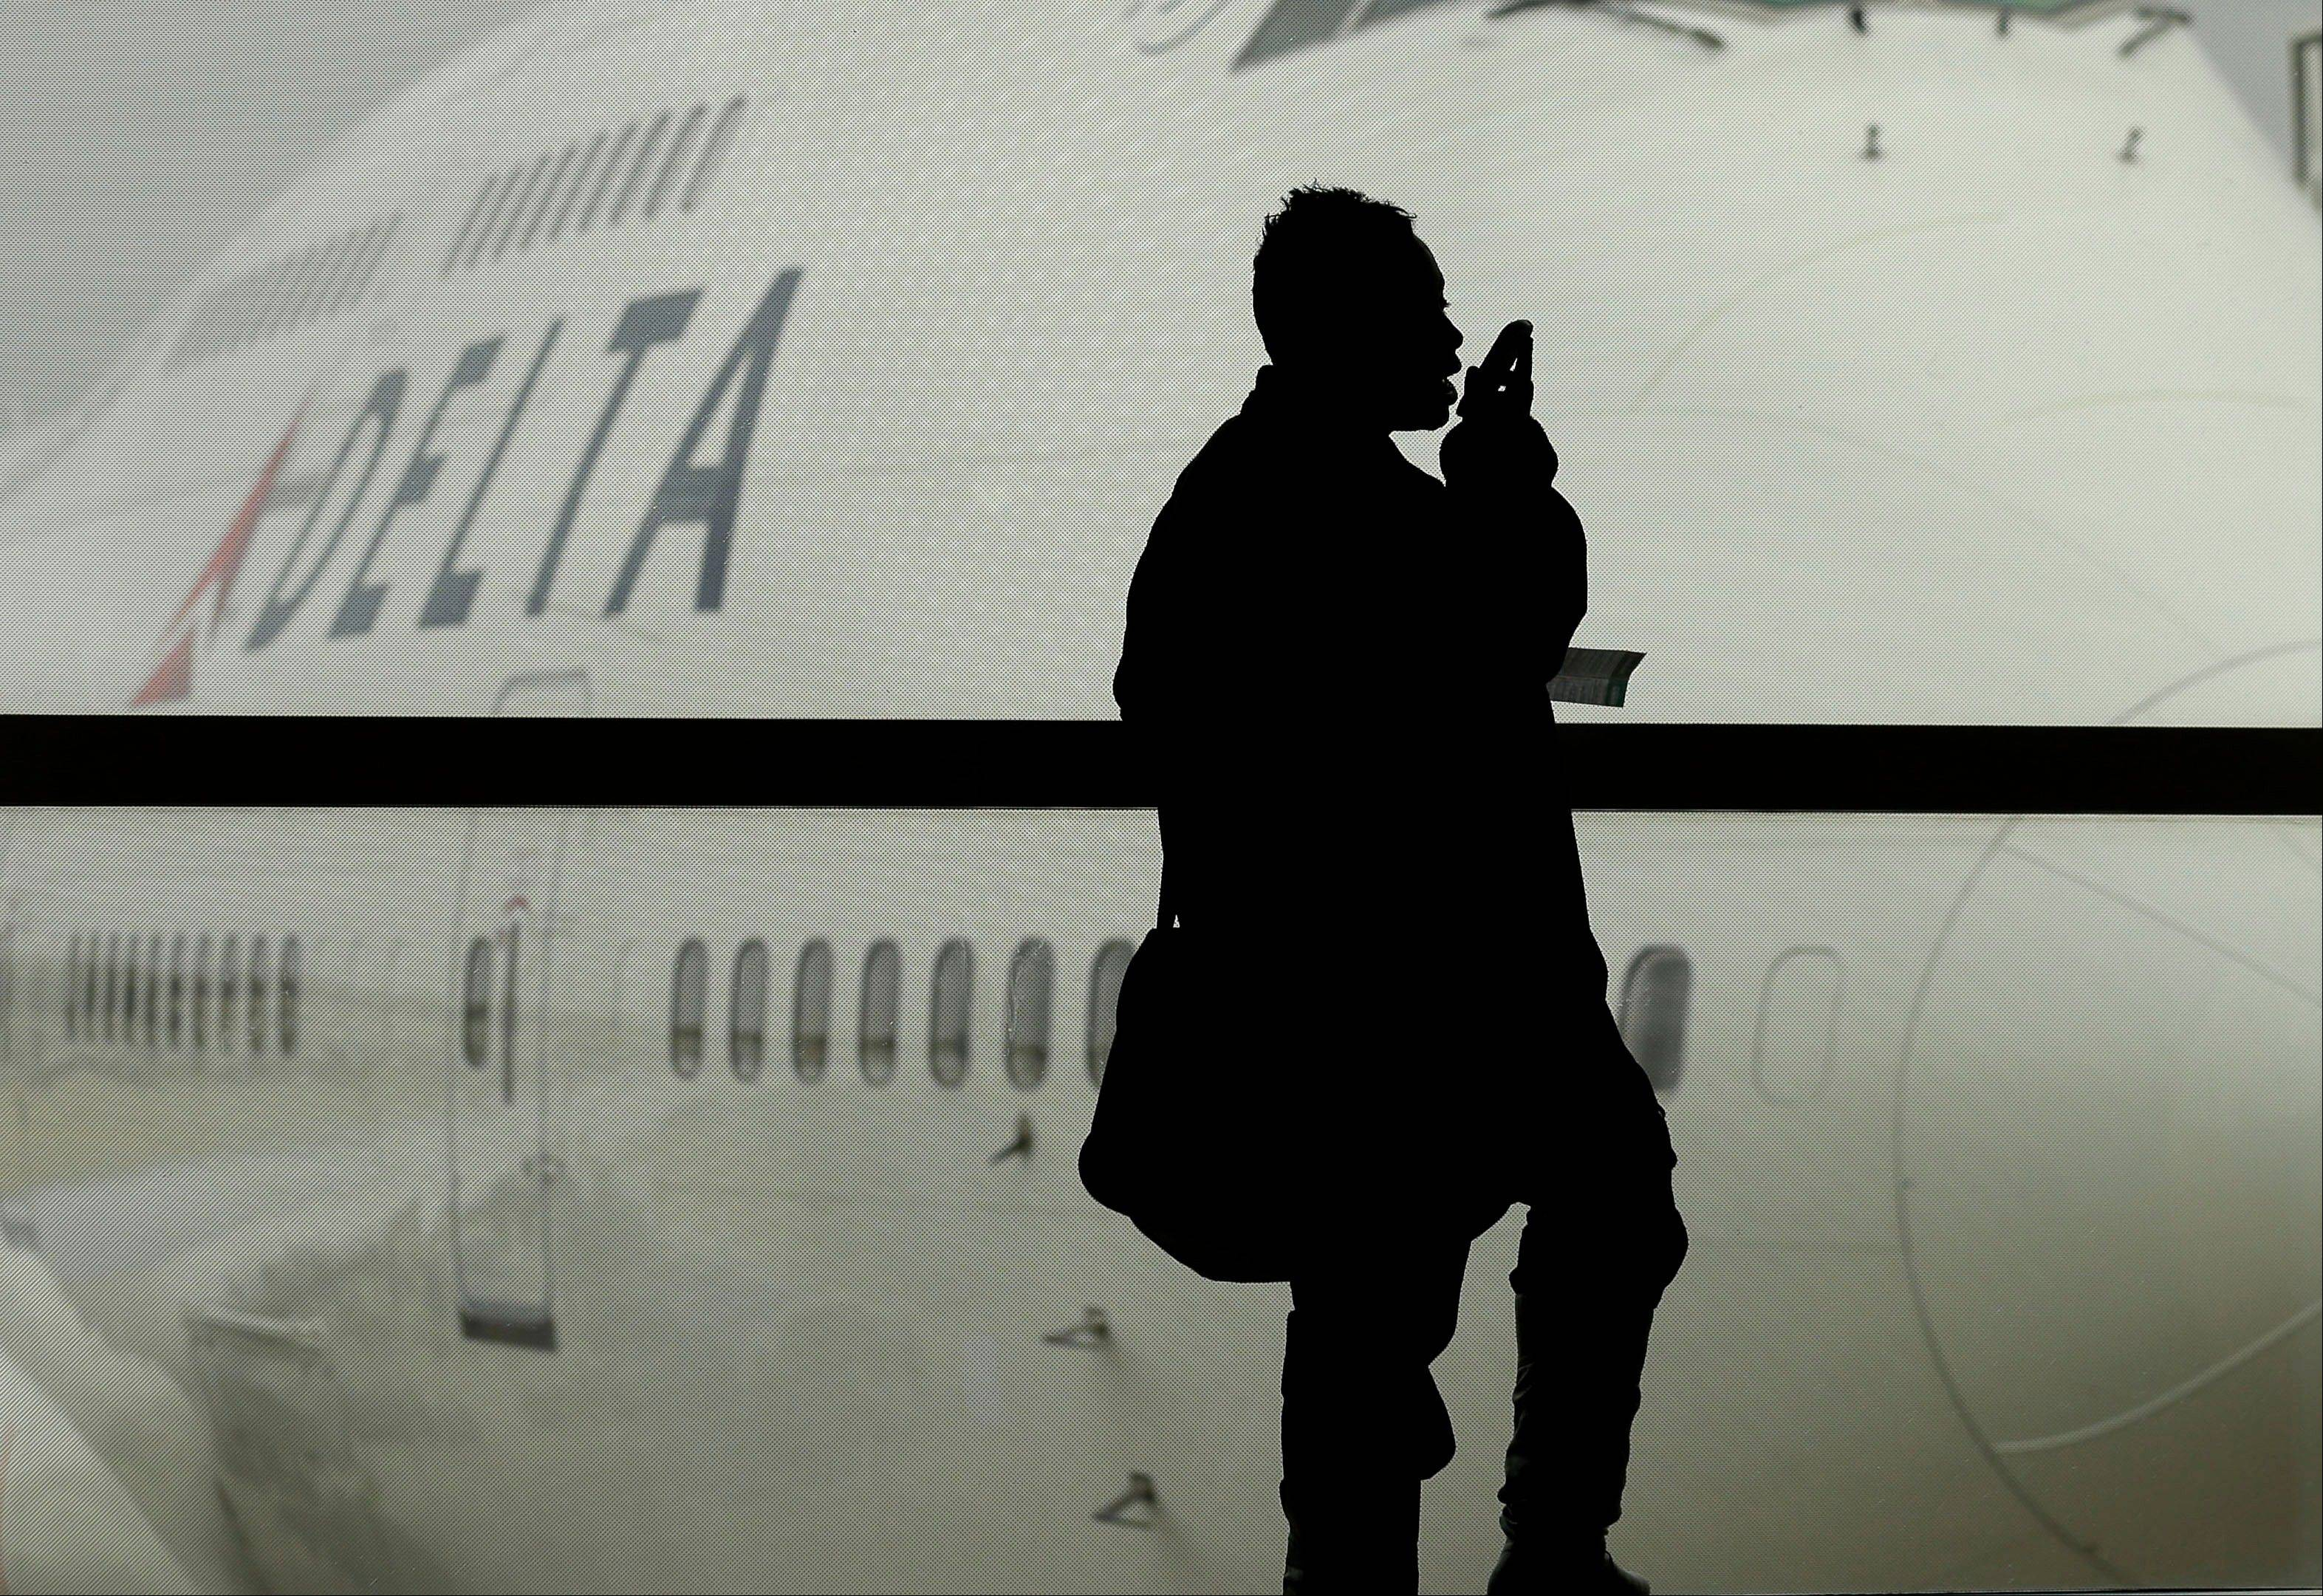 Airline passengers have already been stripped of their legroom, hot meals and personal space. Now, they might also lose their silence. The Federal Communications Commission is considering lifting its longtime prohibition on making cellphone calls on airplanes, saying it is time �to review our outdated and restrictive rules.�